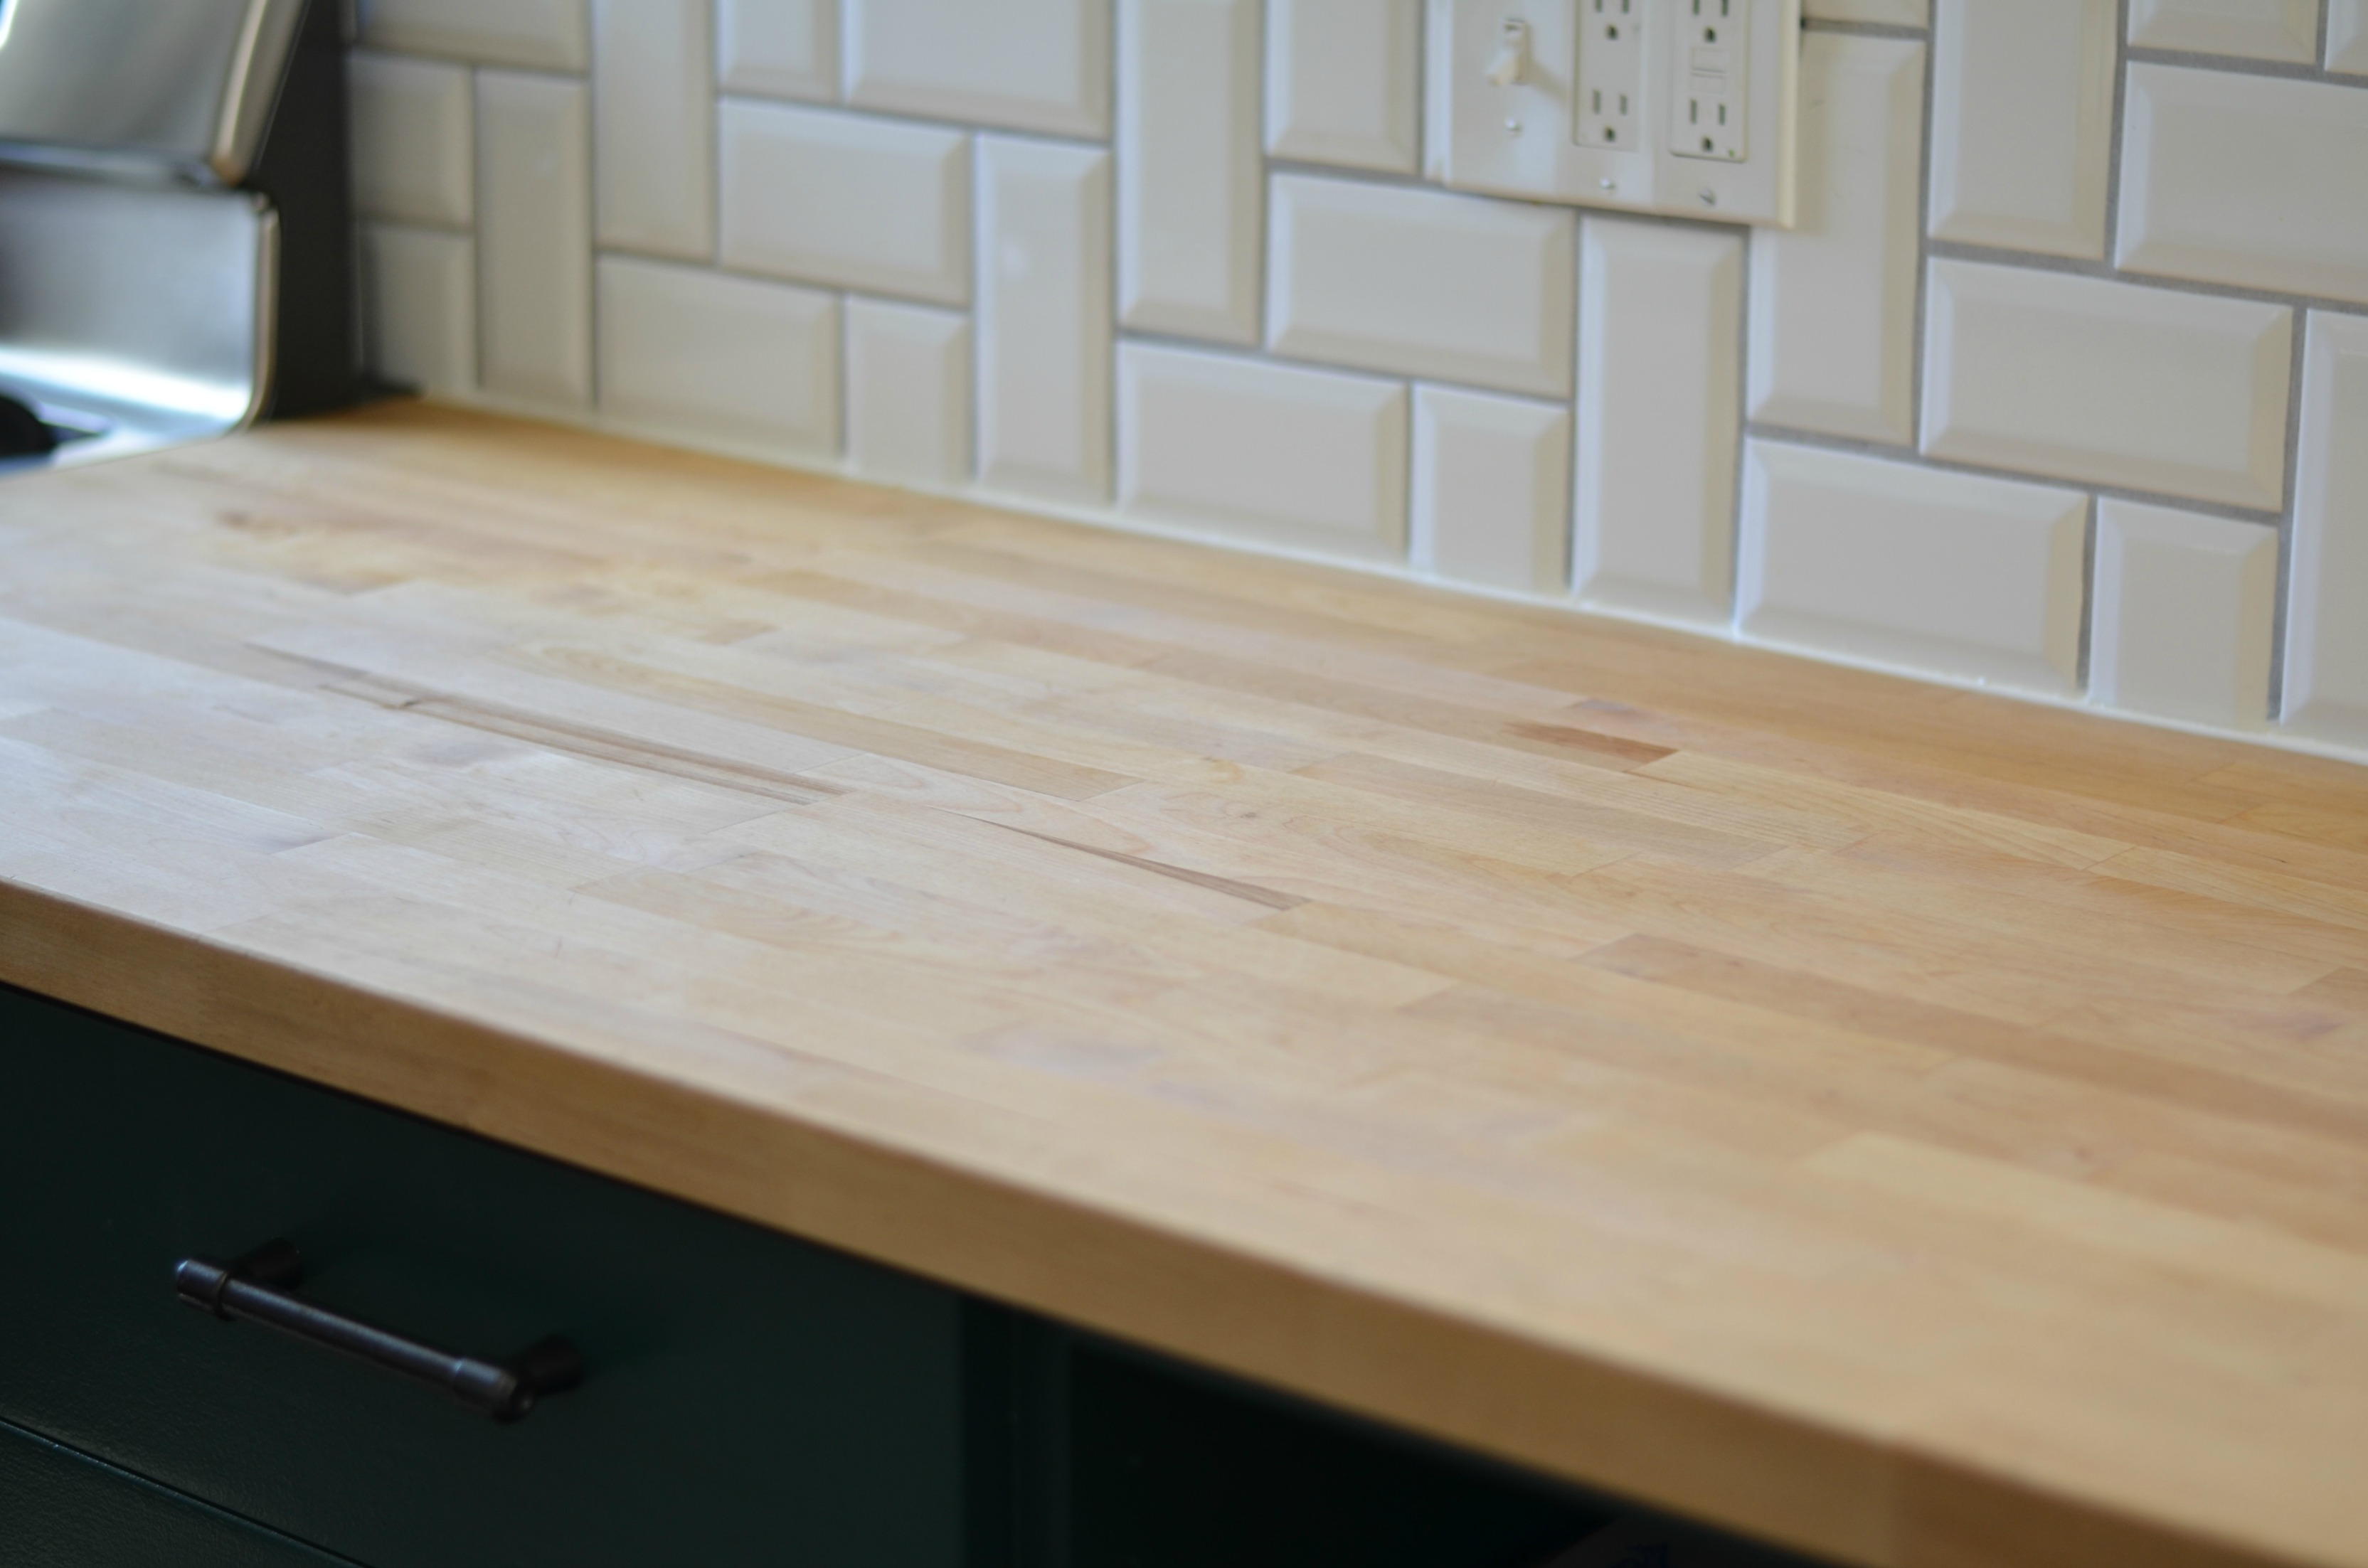 Butcher Block Countertops Care How I Care For Our Butcher Block Countertops Sg Style